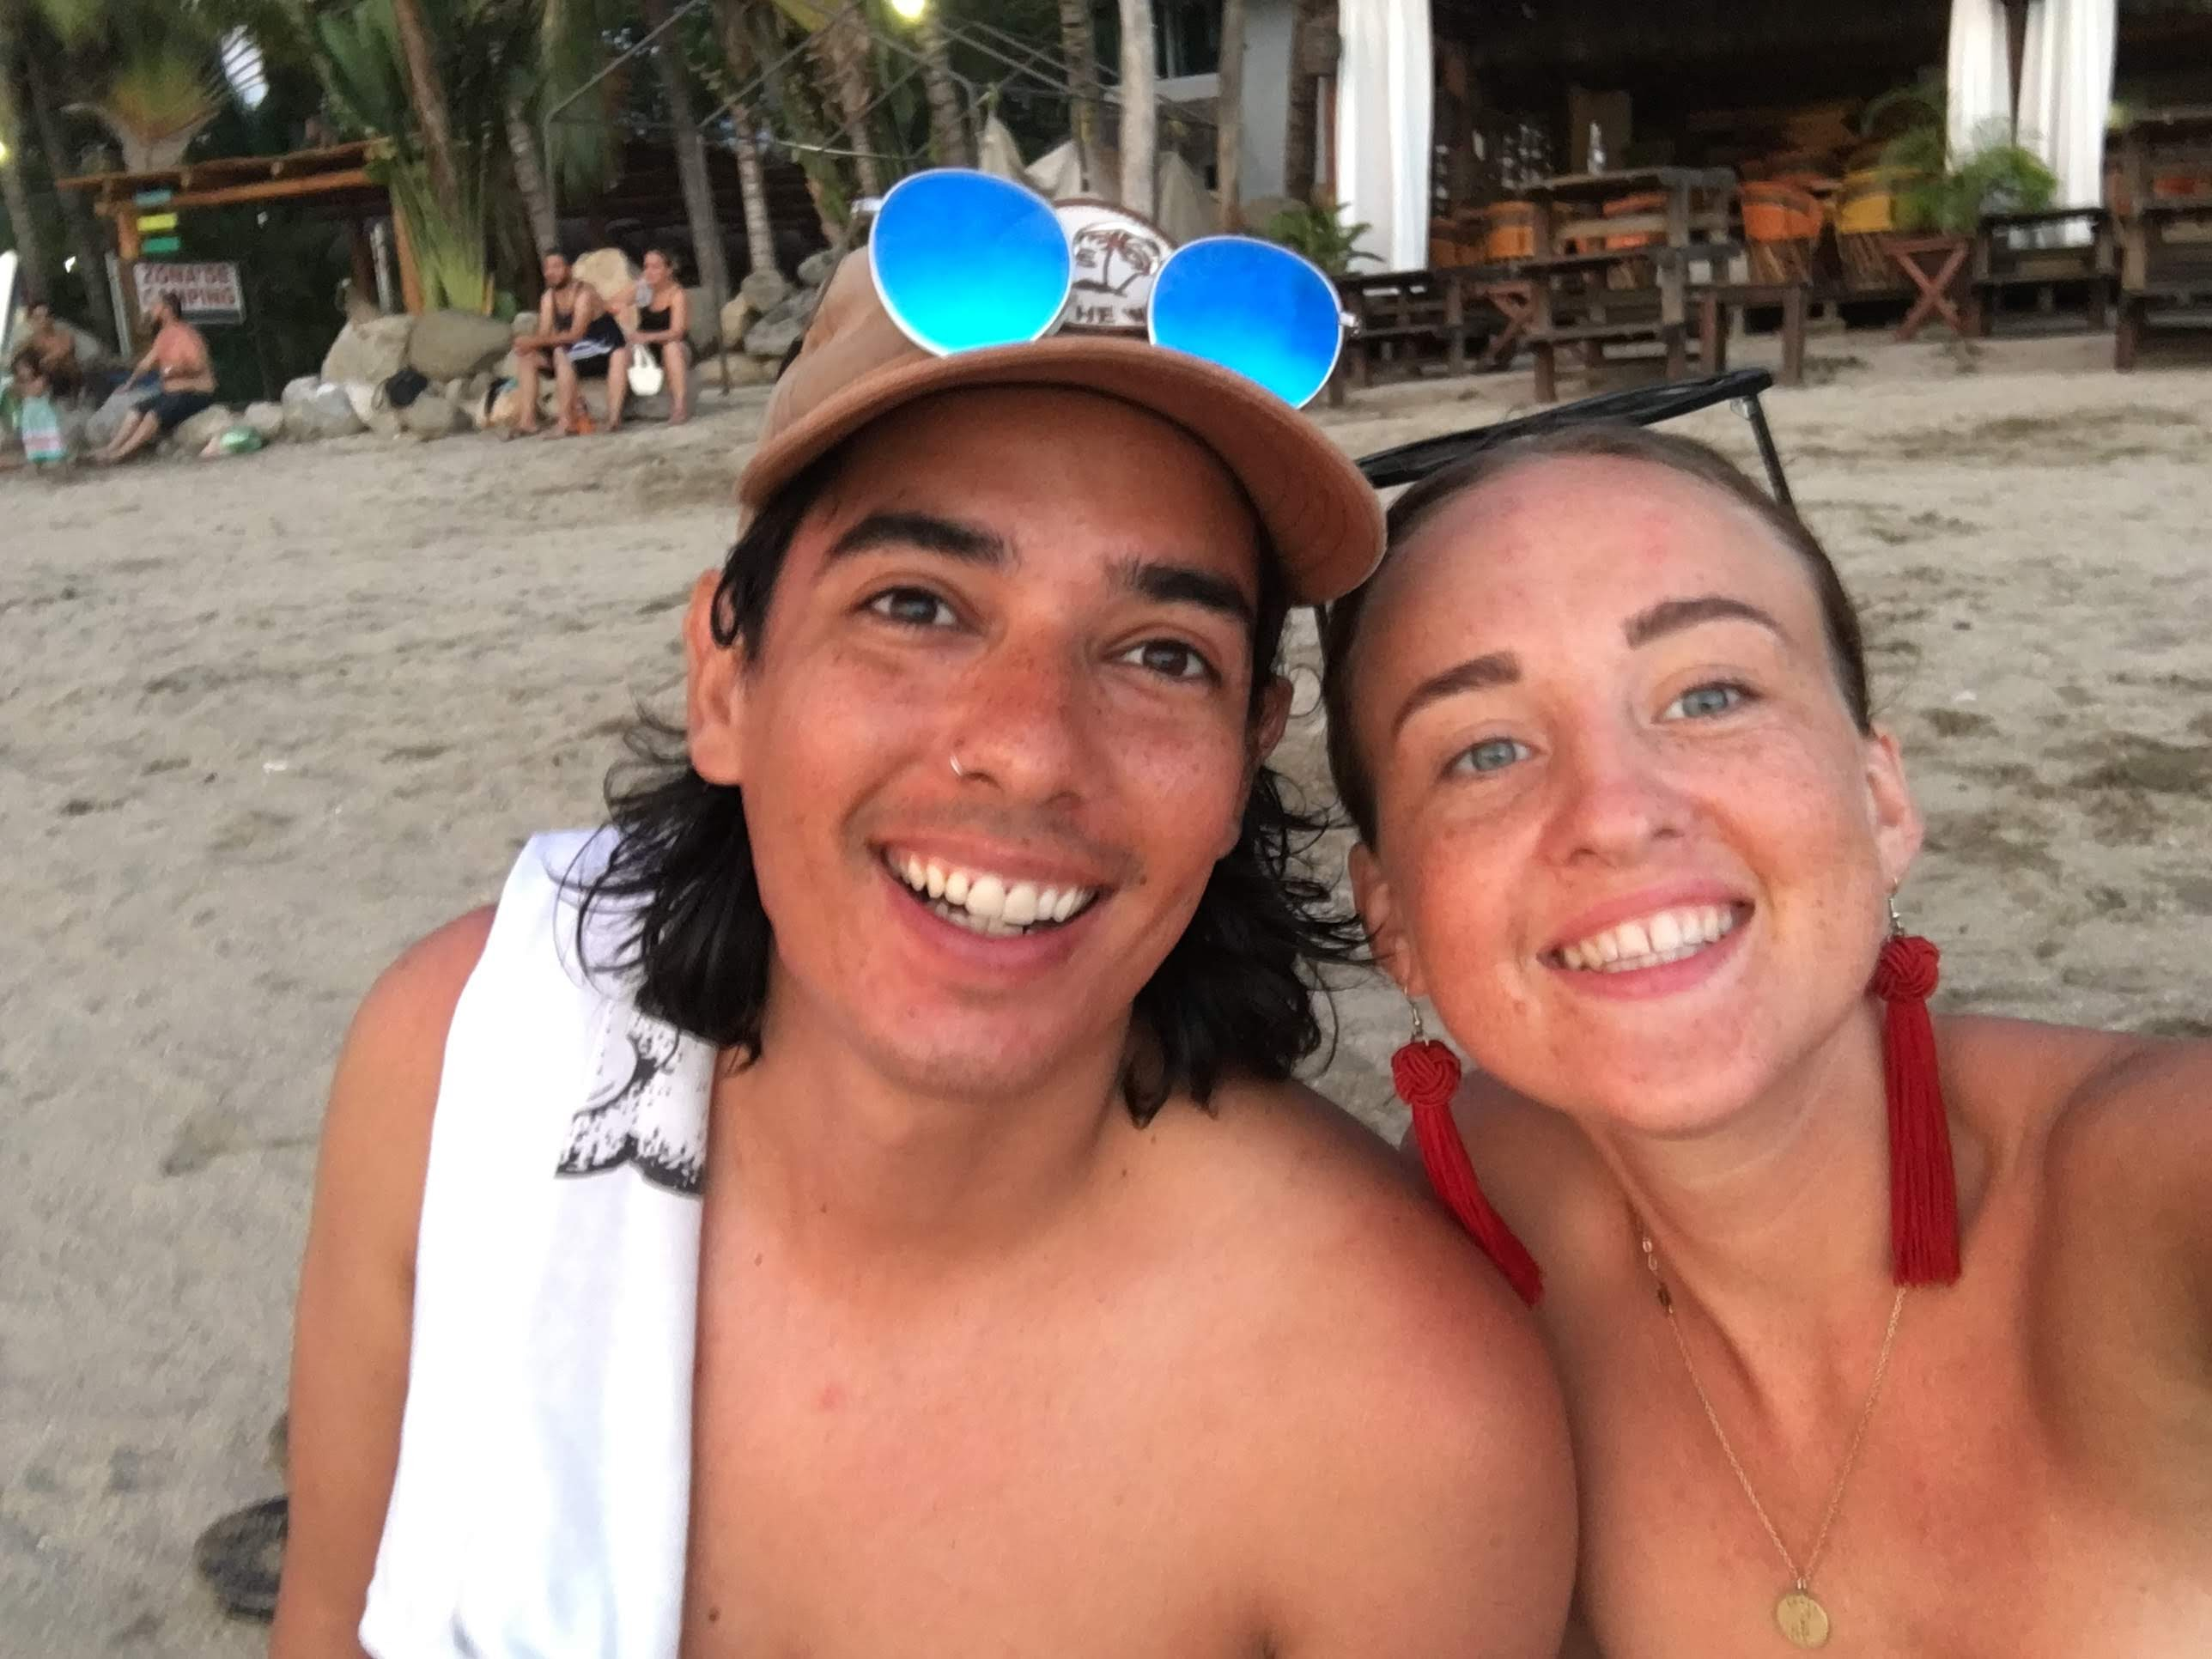 2018 - Mexico - Relationships - new love - lifestyle